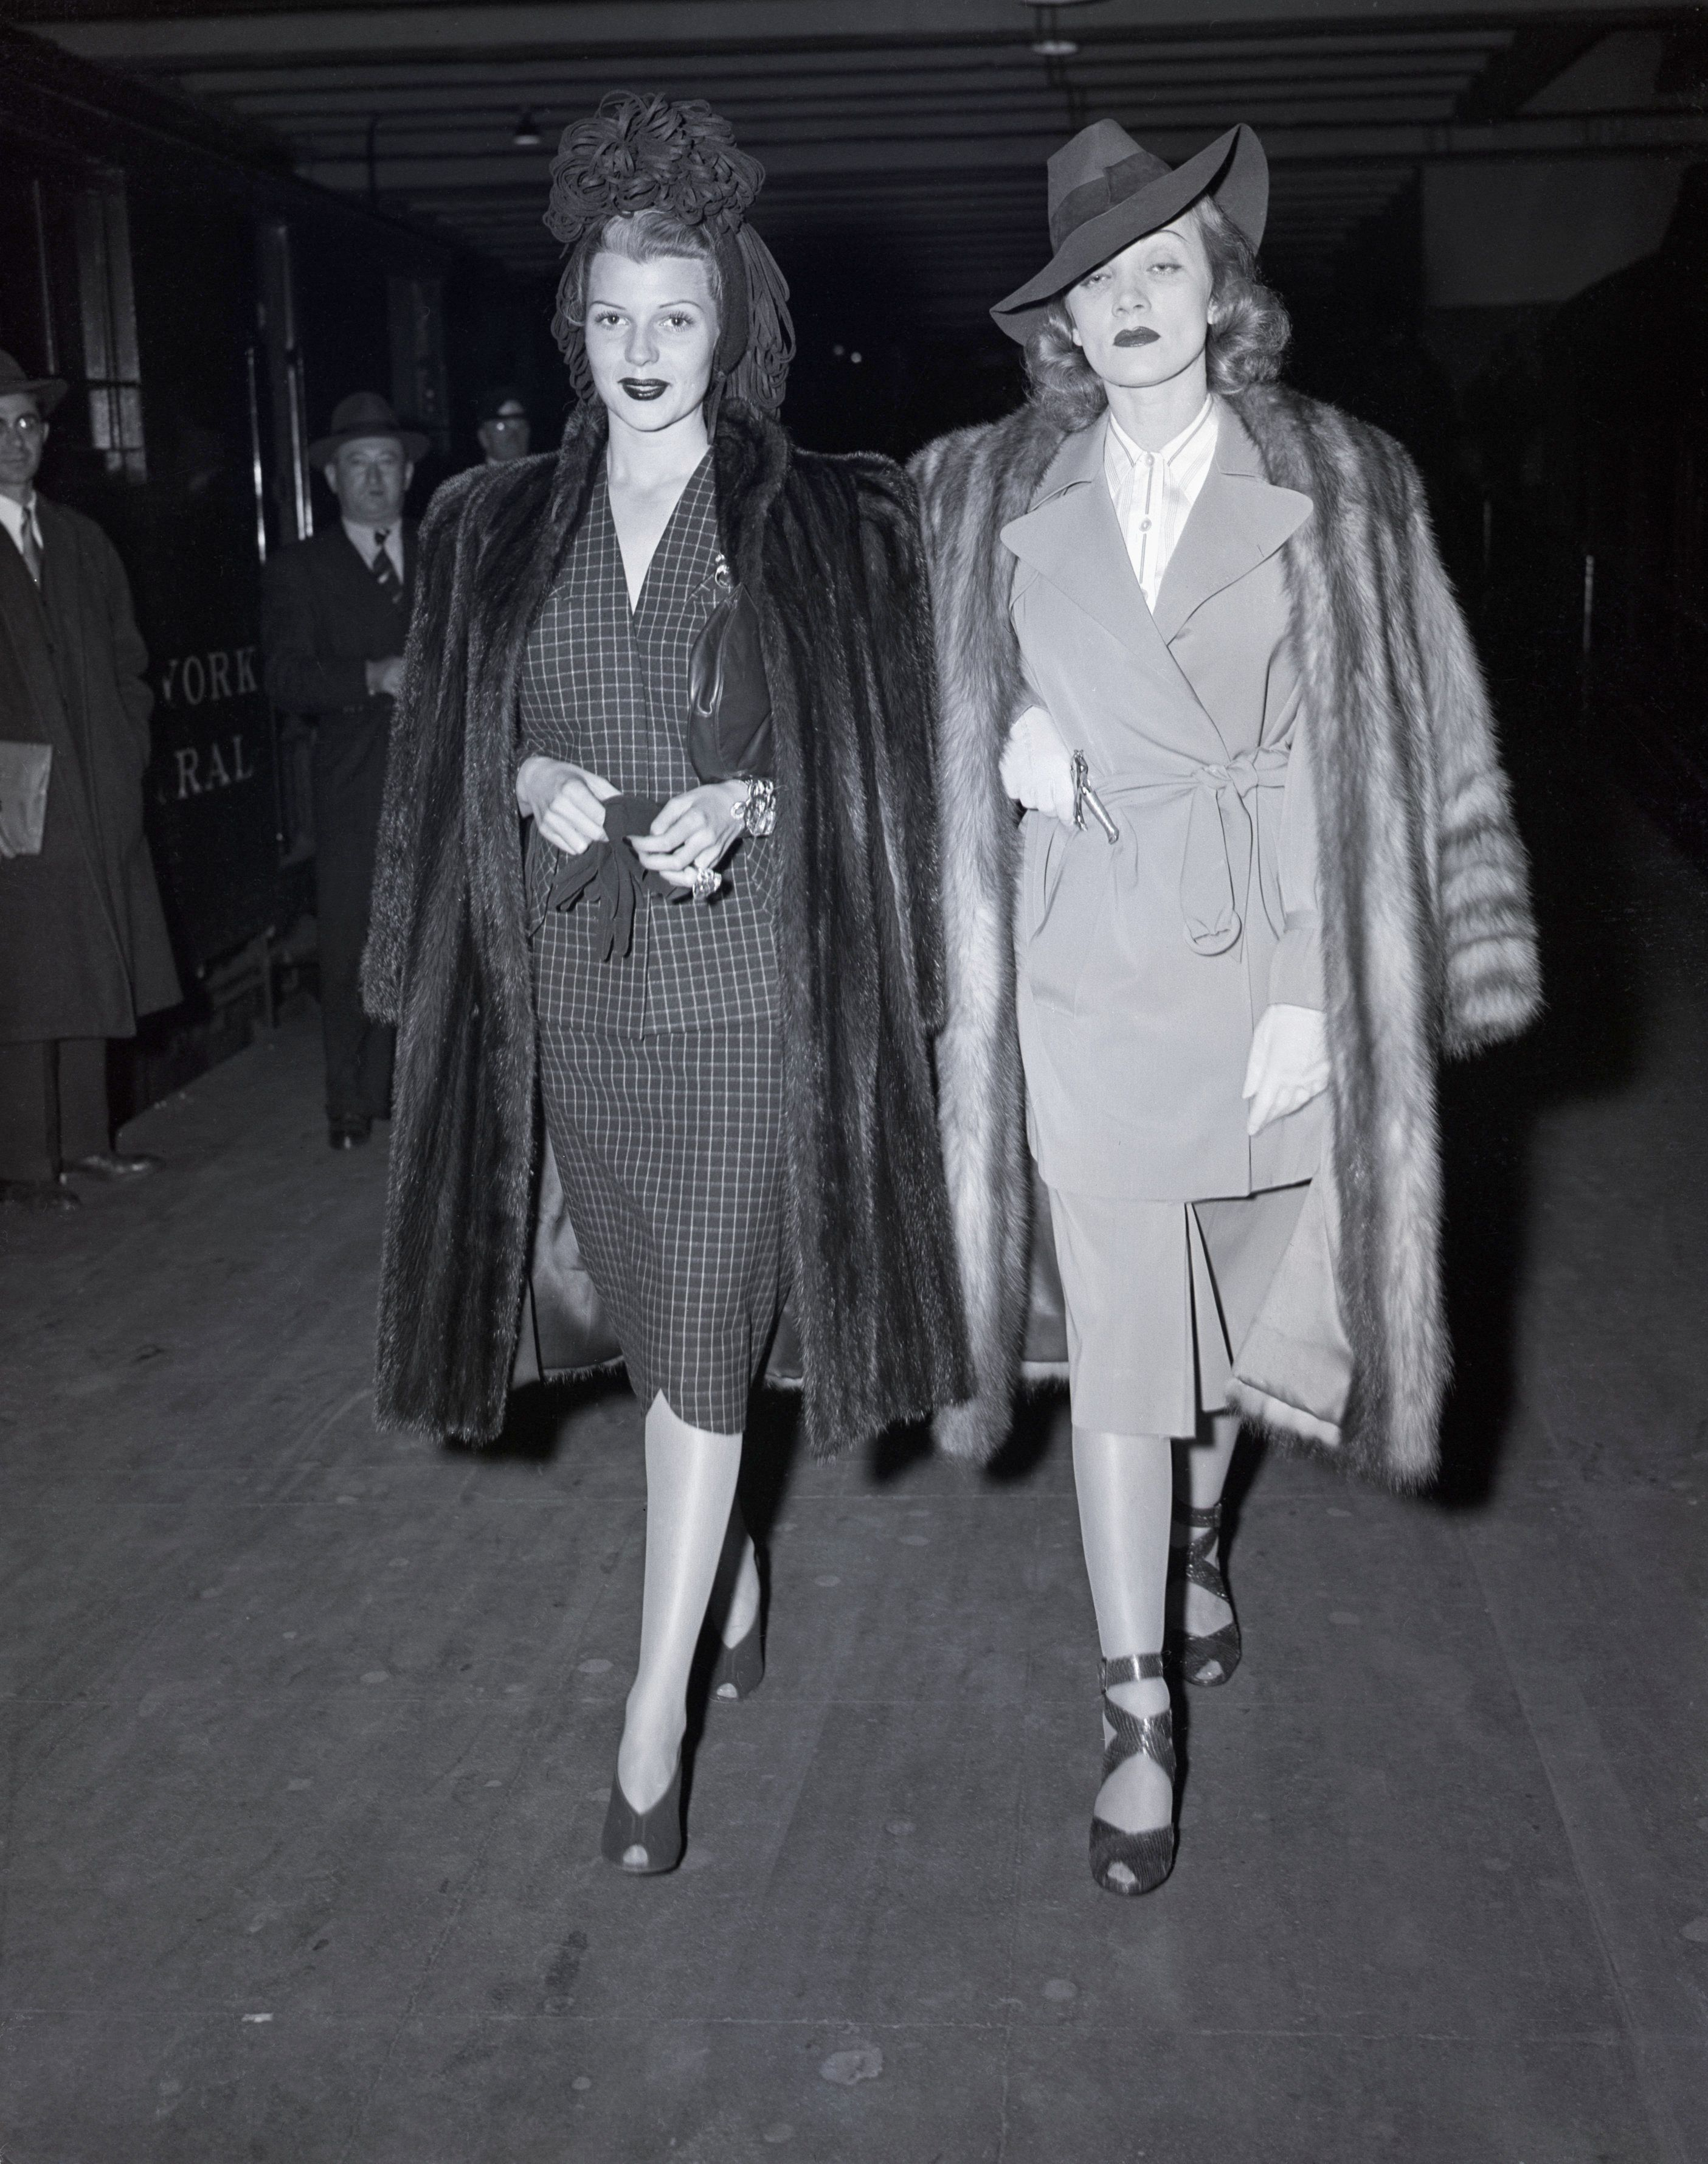 (Original Caption) 11/8/1941-New York, NY-Rita Hayworth and Marlene Dietrich, Columbia Pictures glamour stars, depart for Hollywood after a New York visit, during which they shone at various affairs -- the big town is a bit duller now.